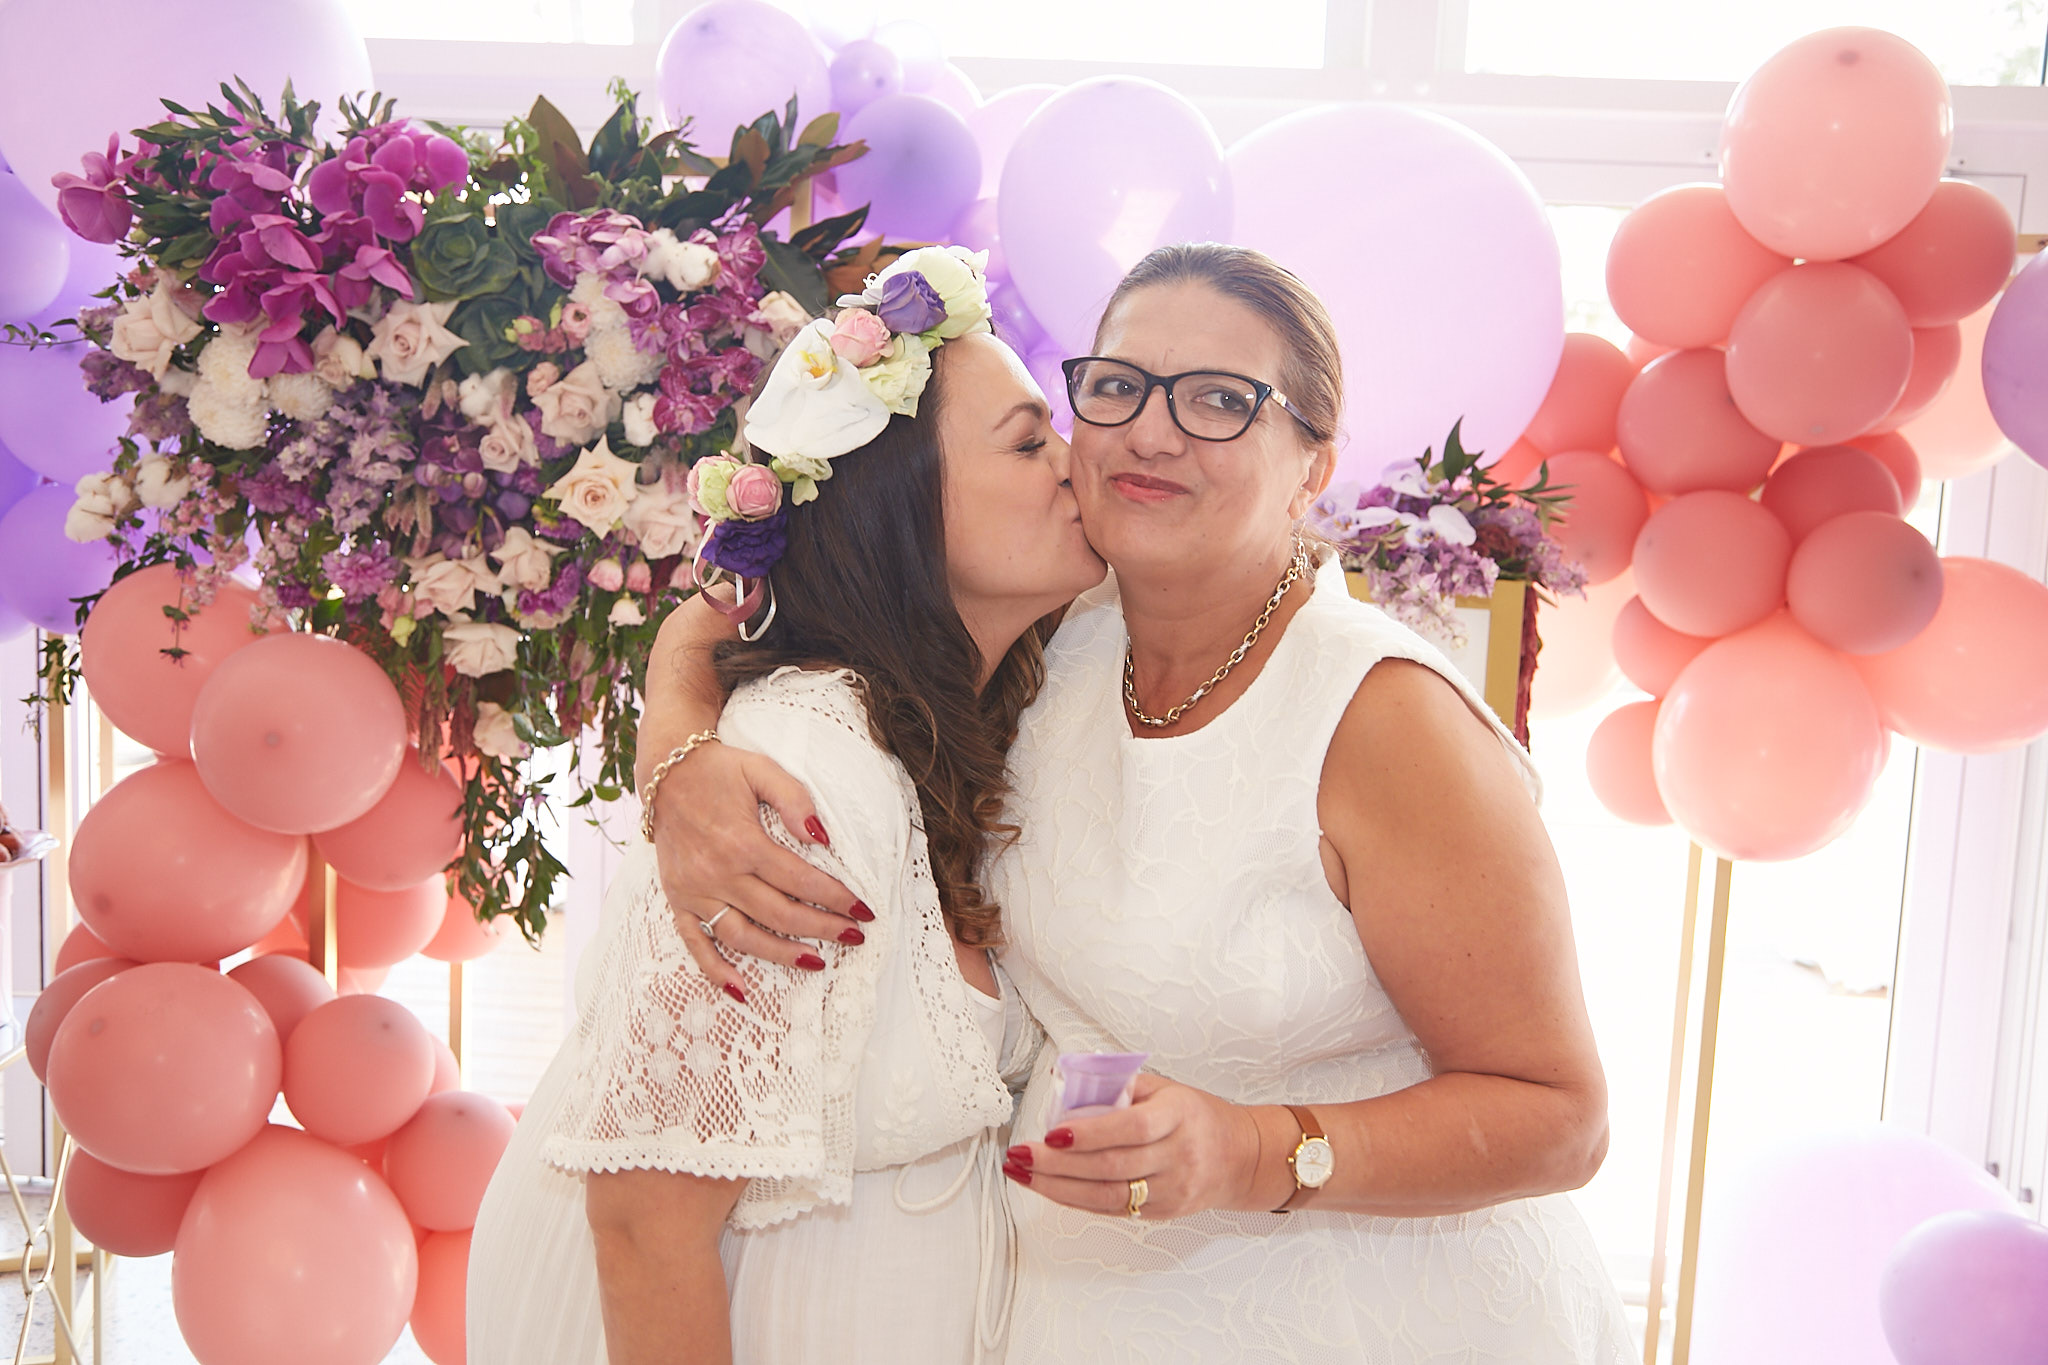 Kate-baby-shower-harrison-photography-069